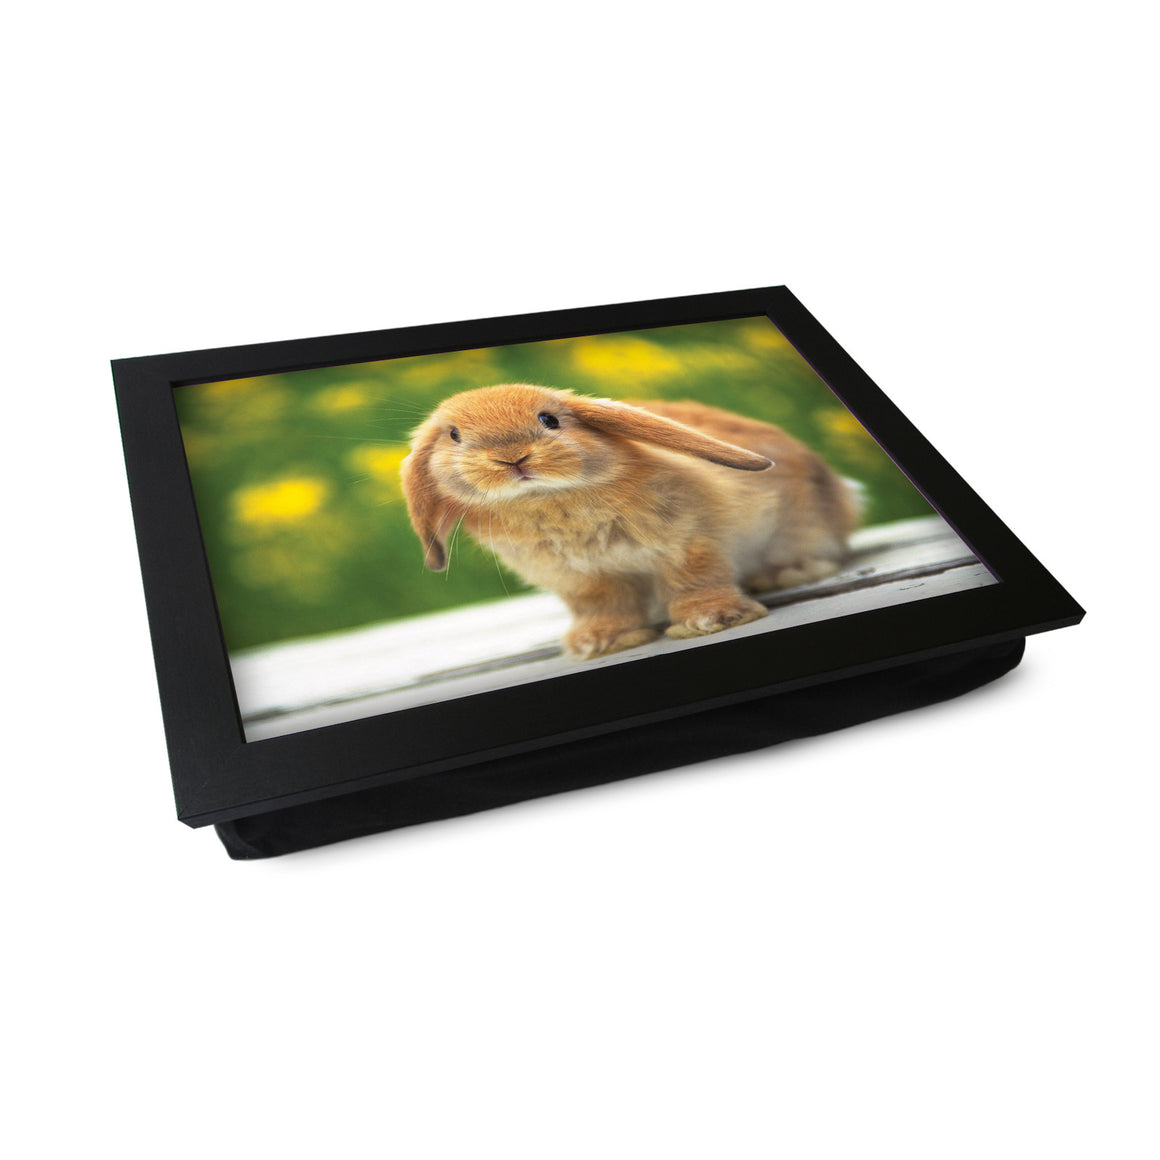 Cute Bunny Rabbit Lap Tray - L0480